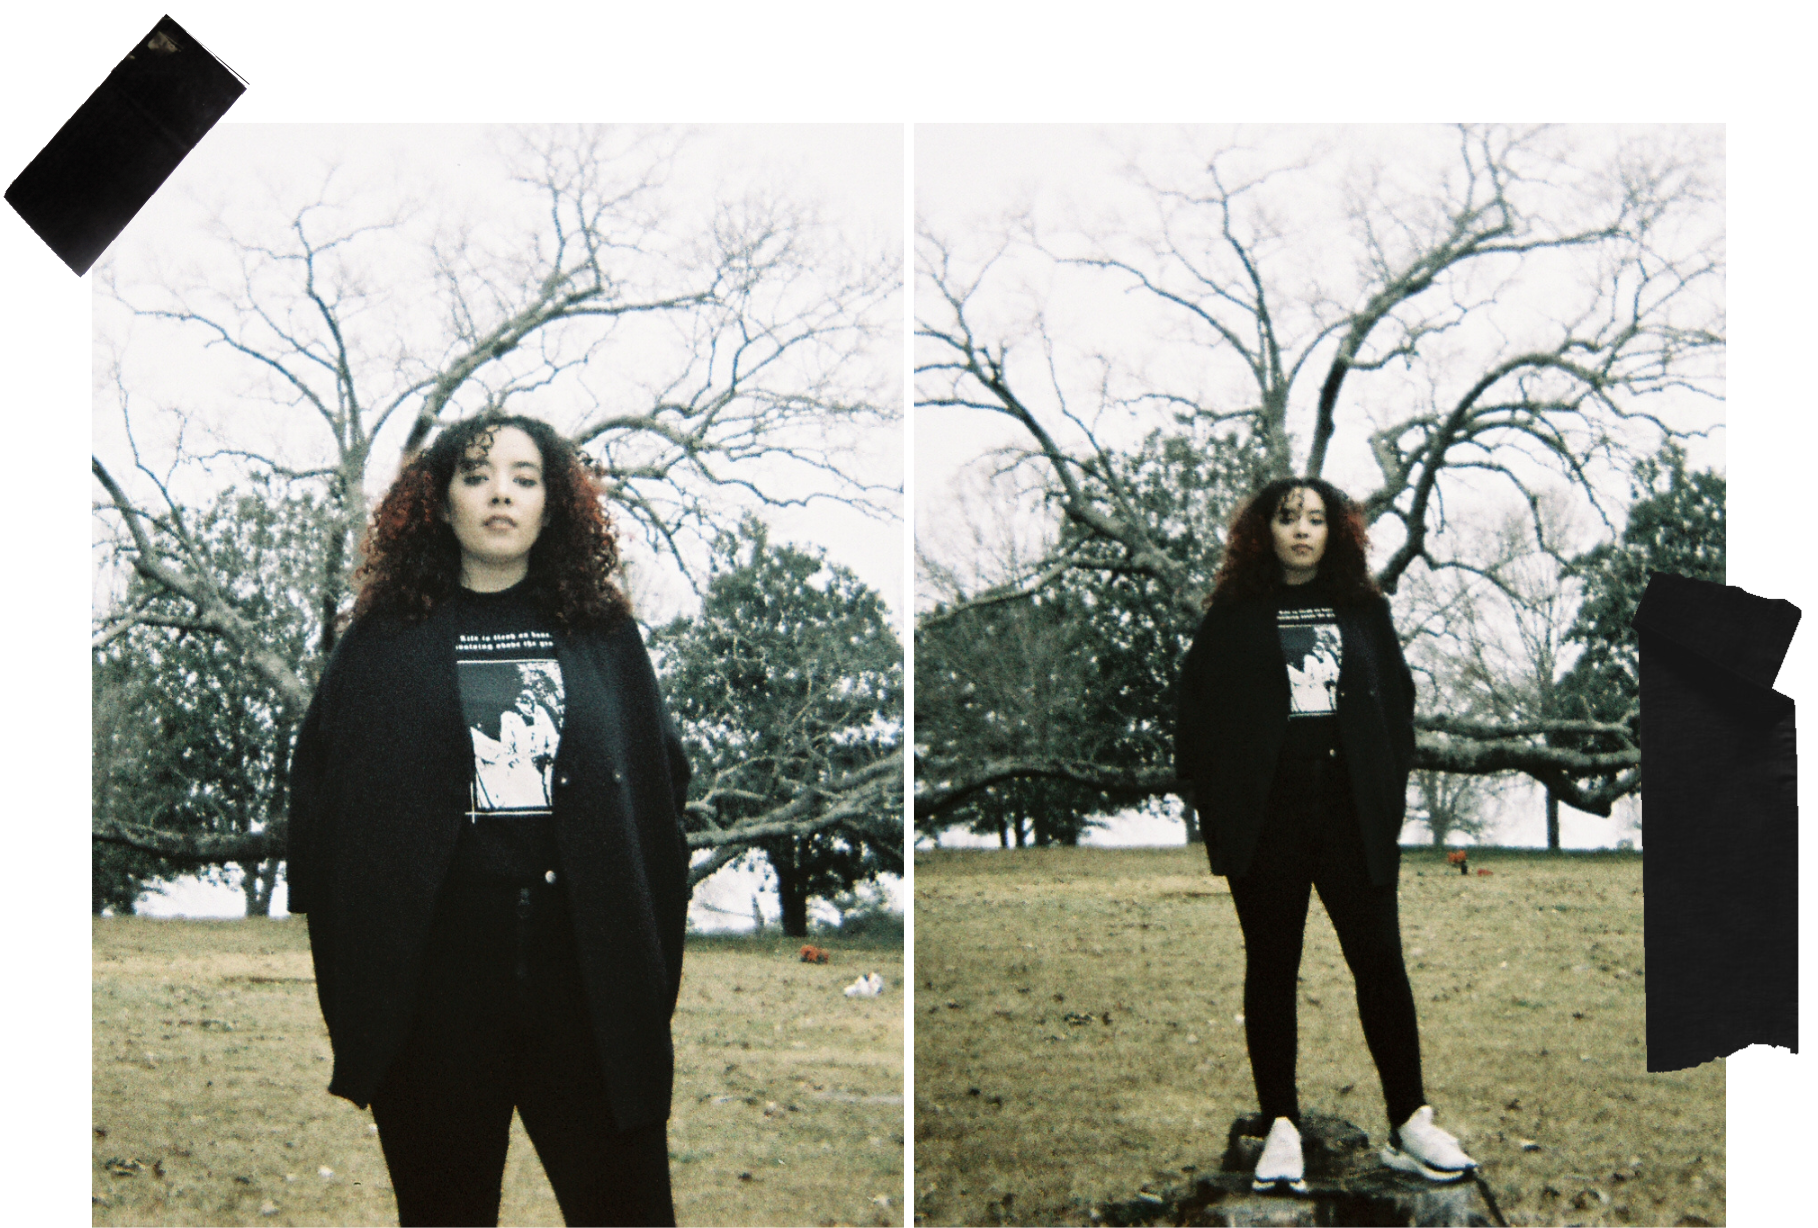 Two faded images shot on film of Three of Swords owner, Anya Gibson, wearing a black turtleneck, black kimono jacket, black pants, and white sneakers, standing on top of a stone in front of a tree in a cemetery.